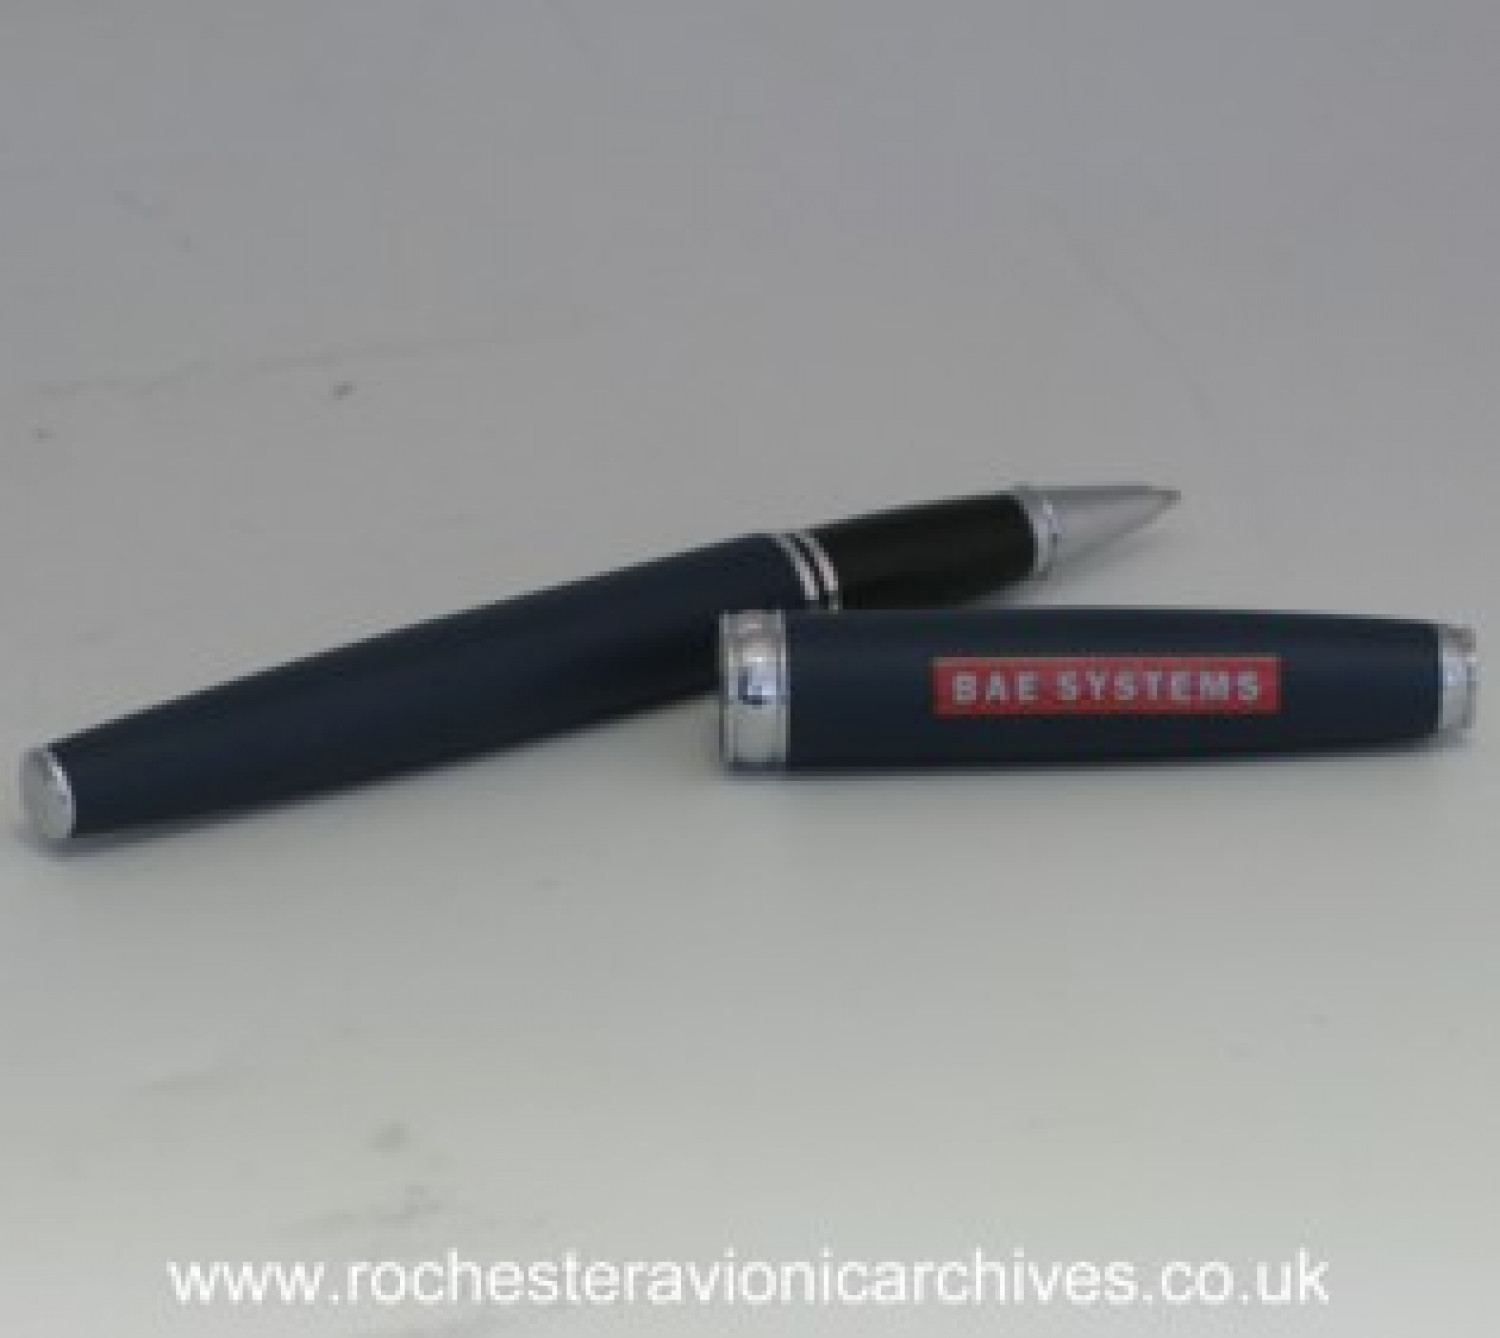 BAE Systems Pen